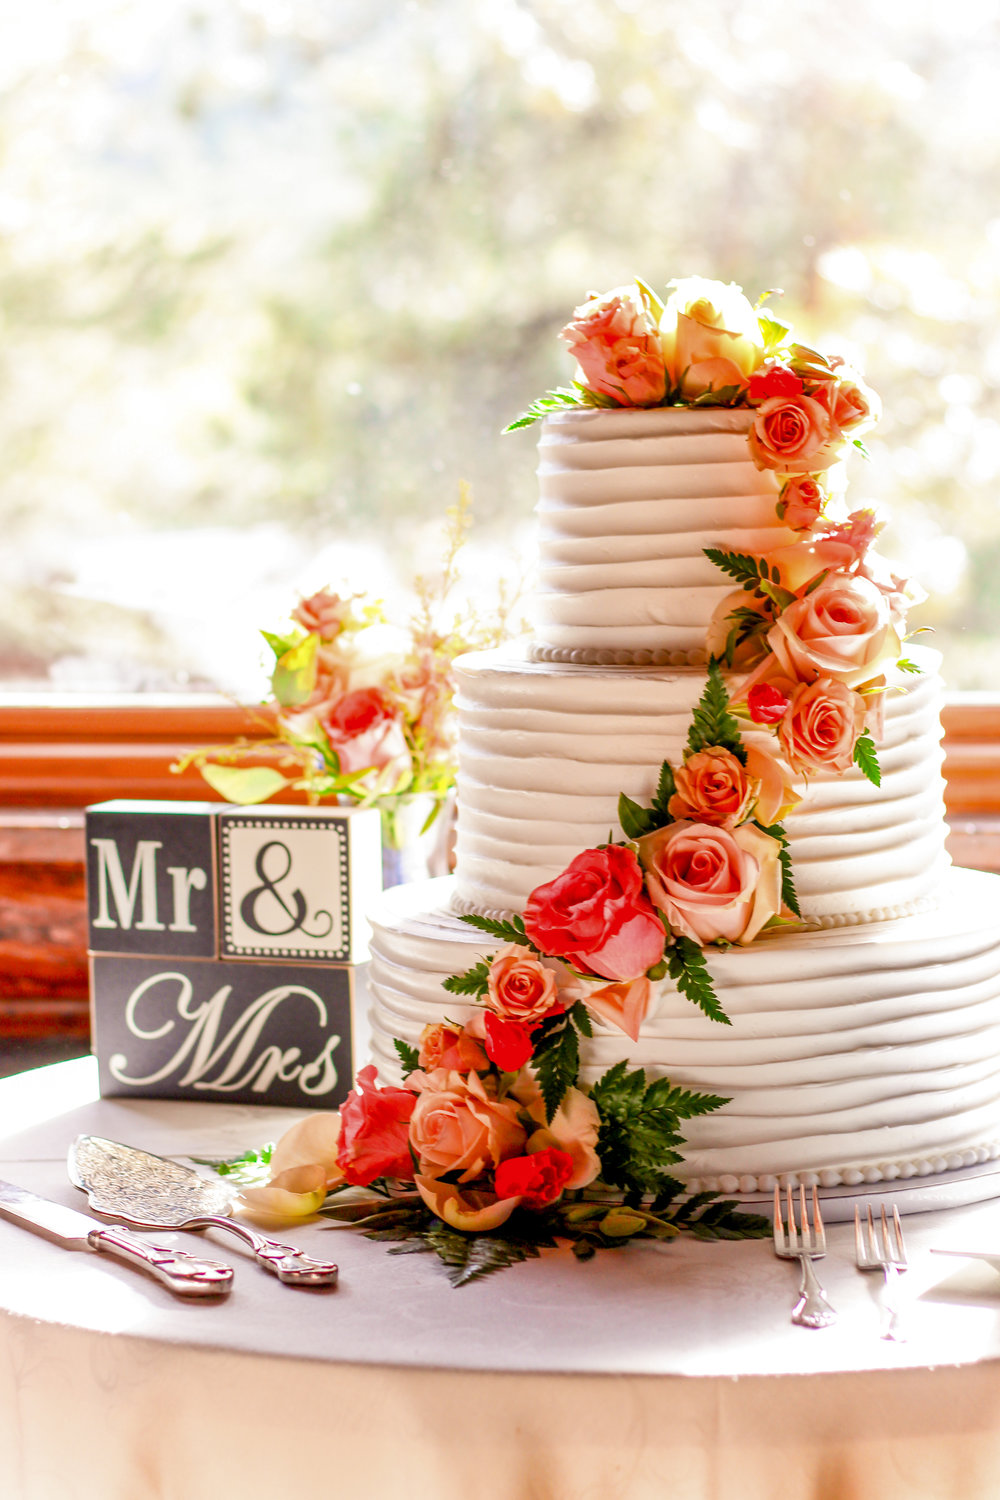 alexandra-rice-photography-wedding-cake-santa-cruz-reception.jpg